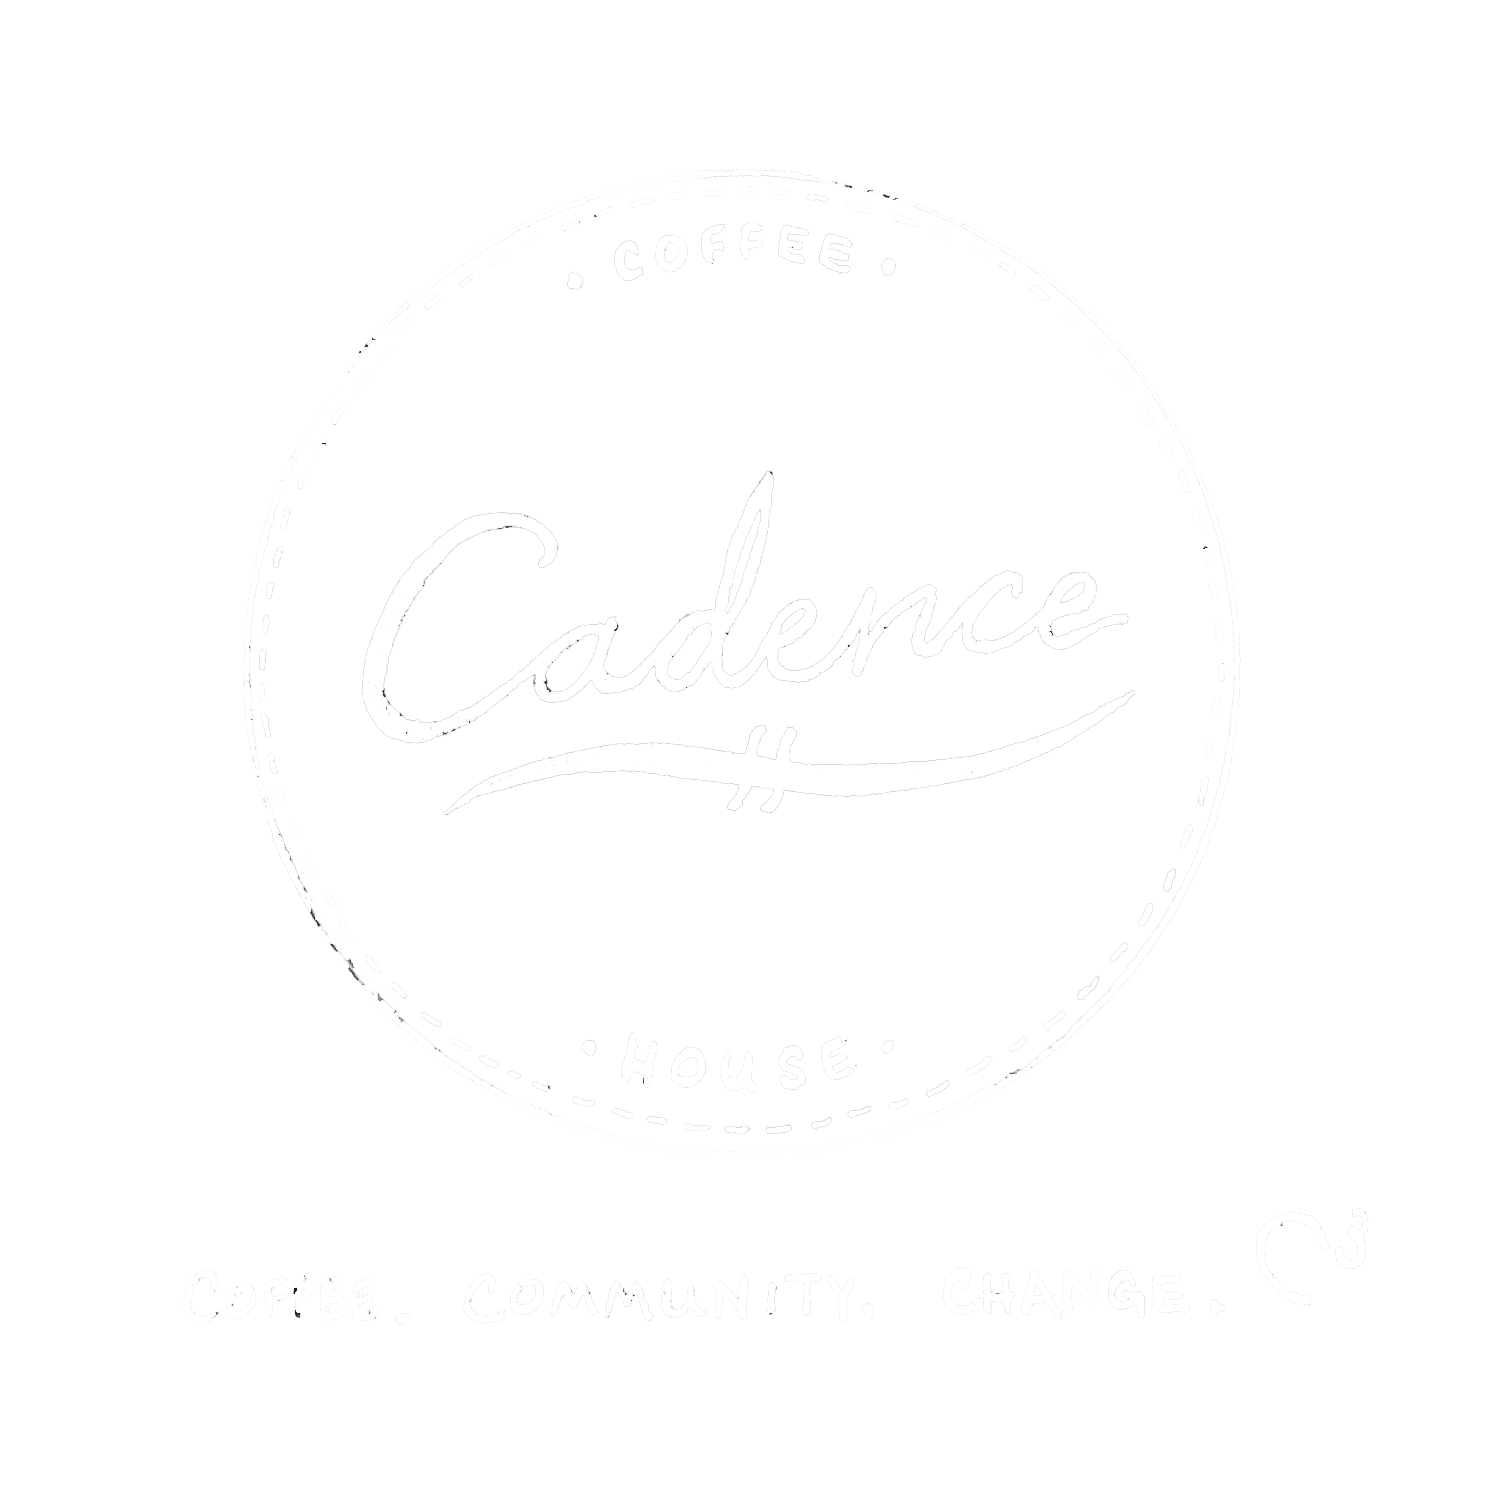 Cadence Coffee Company